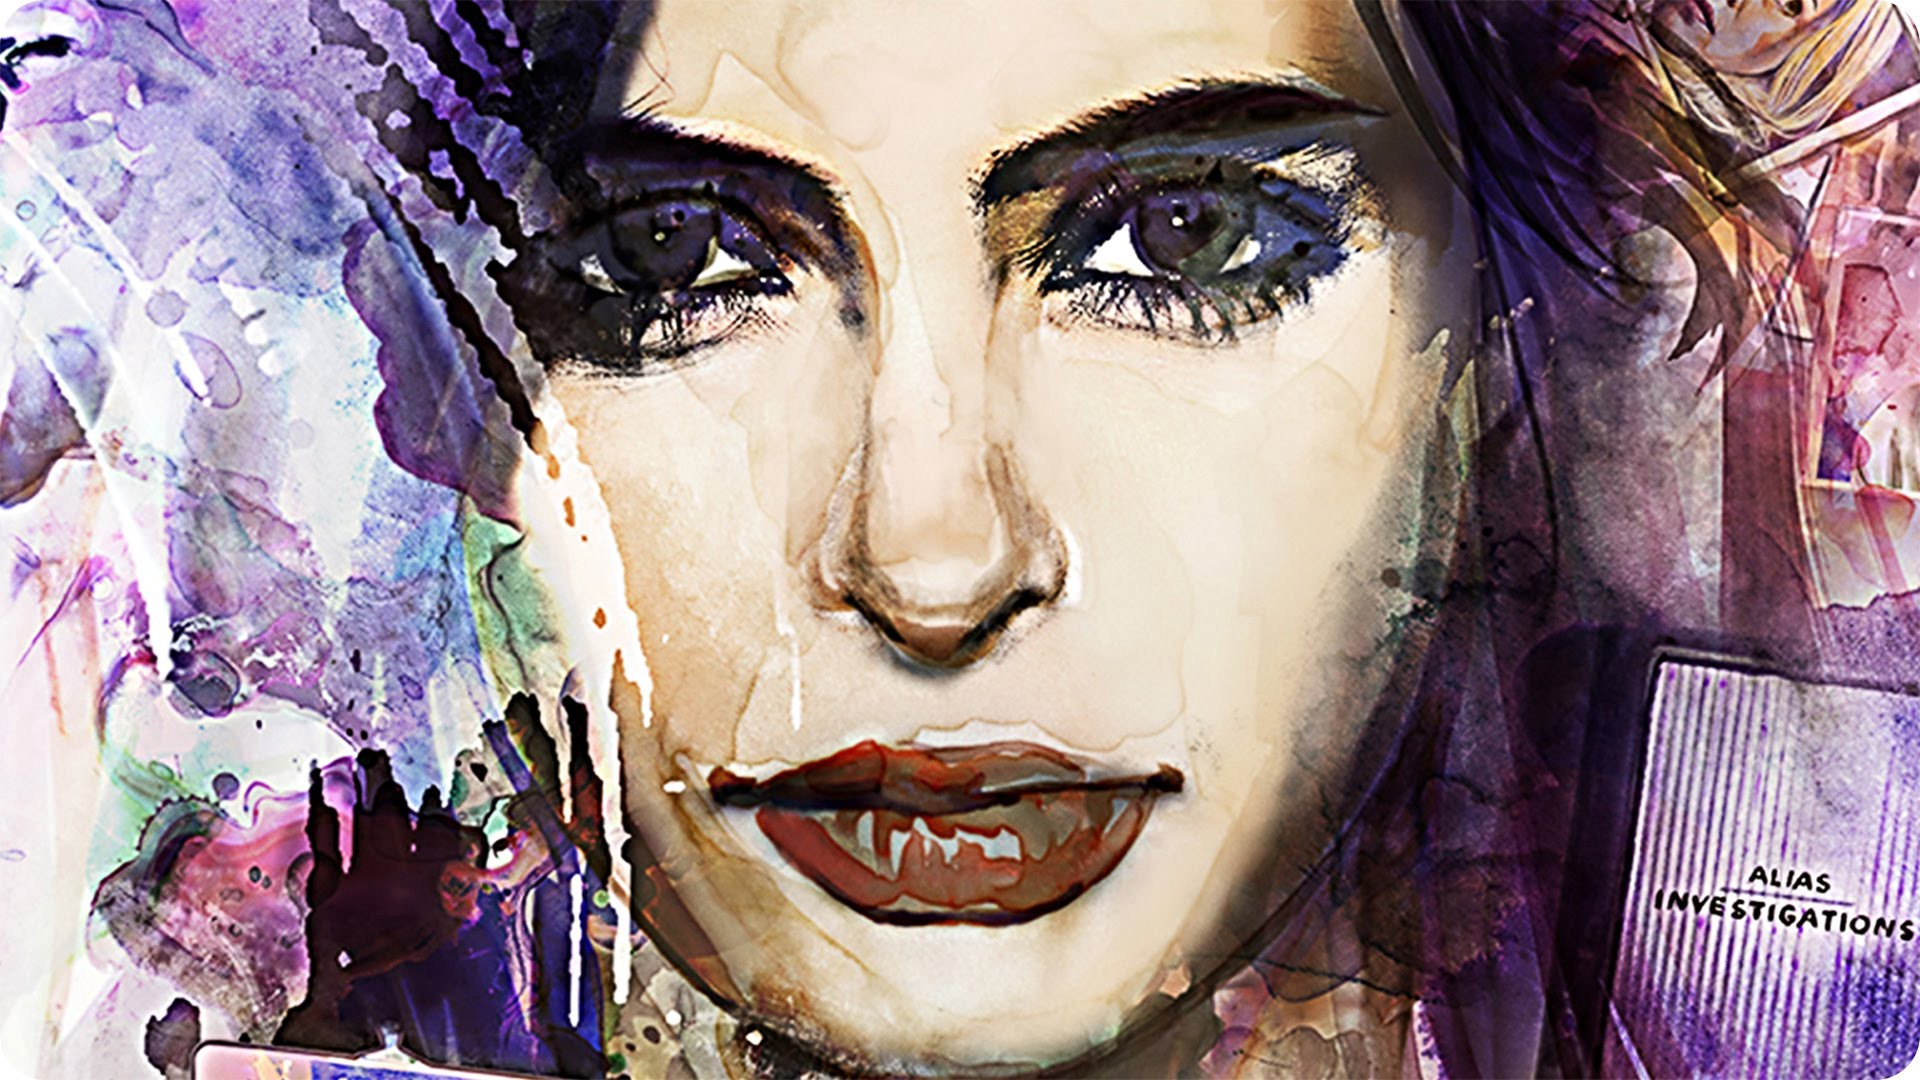 Television Project Brings Us The Super Ed Jessica Jones Starring Krysten Ritter Of Breaking Bad And Don T Trust B In Apartment 23 Fame